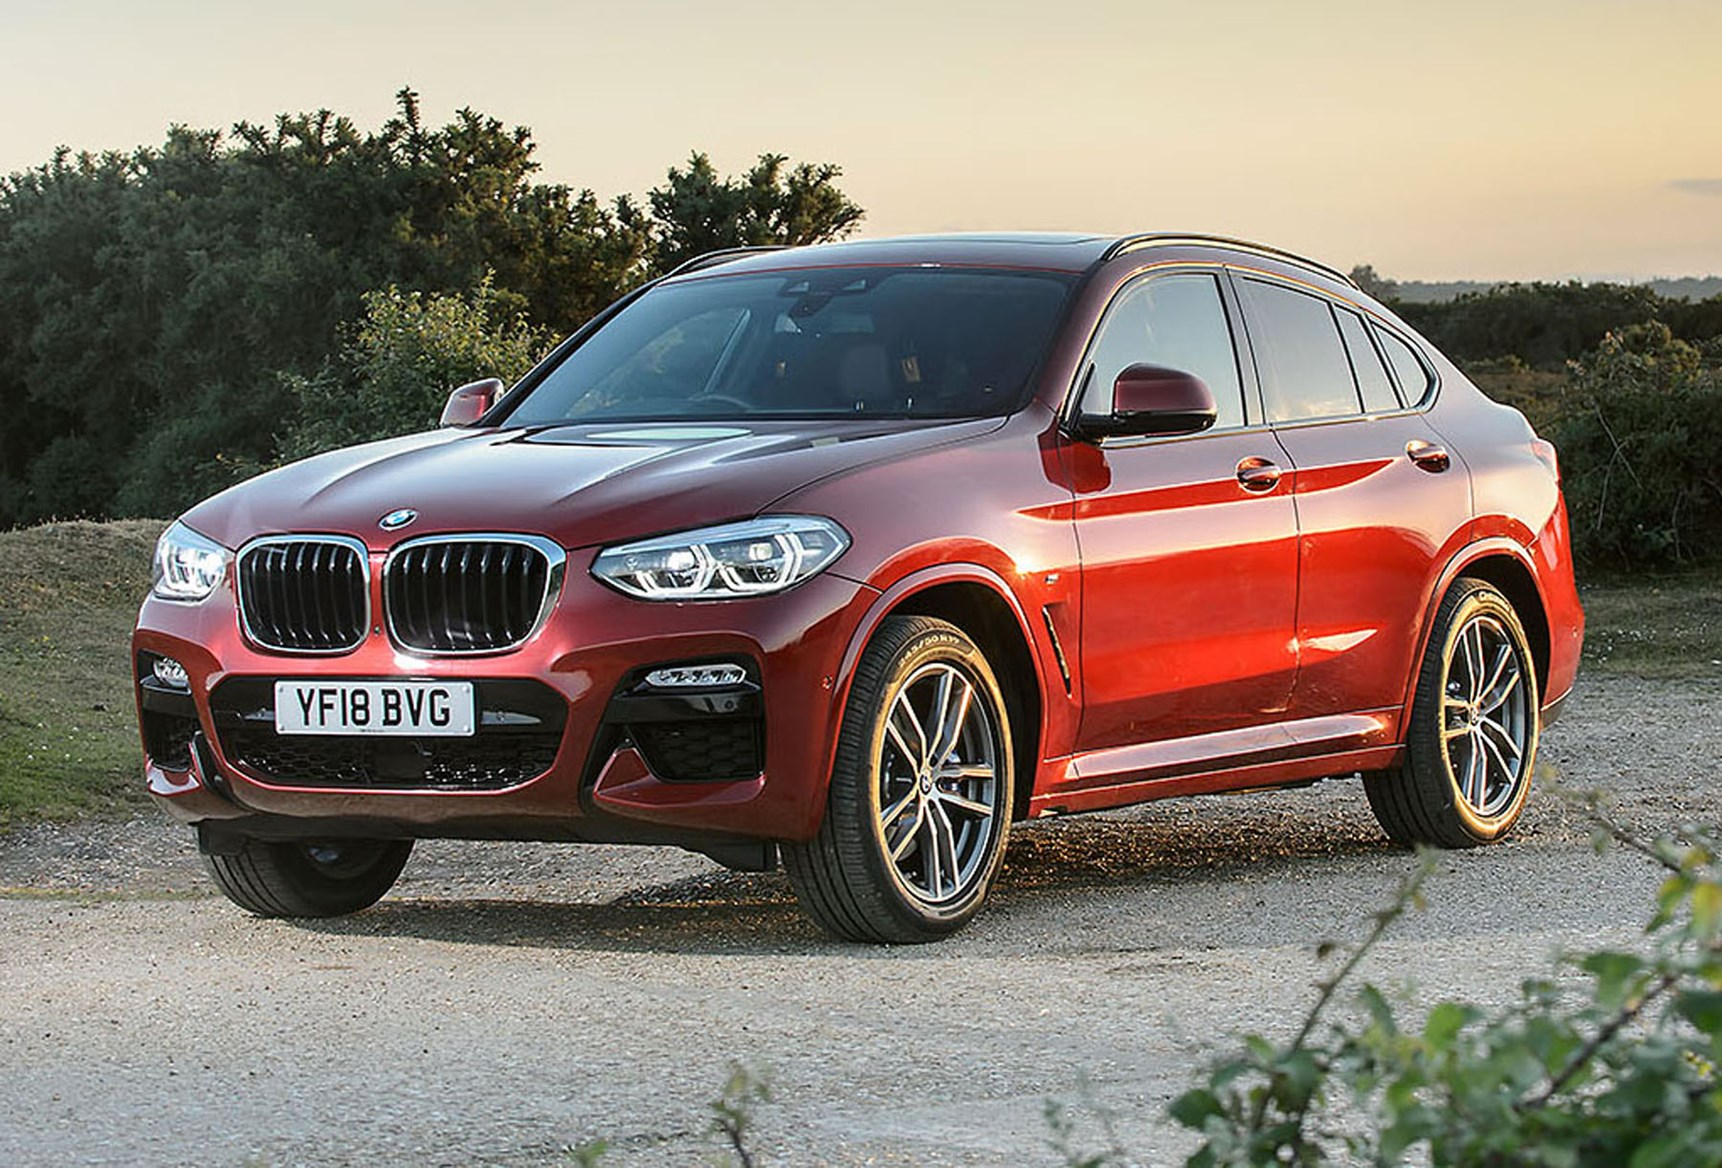 BMW X4 SUV Review: Summary